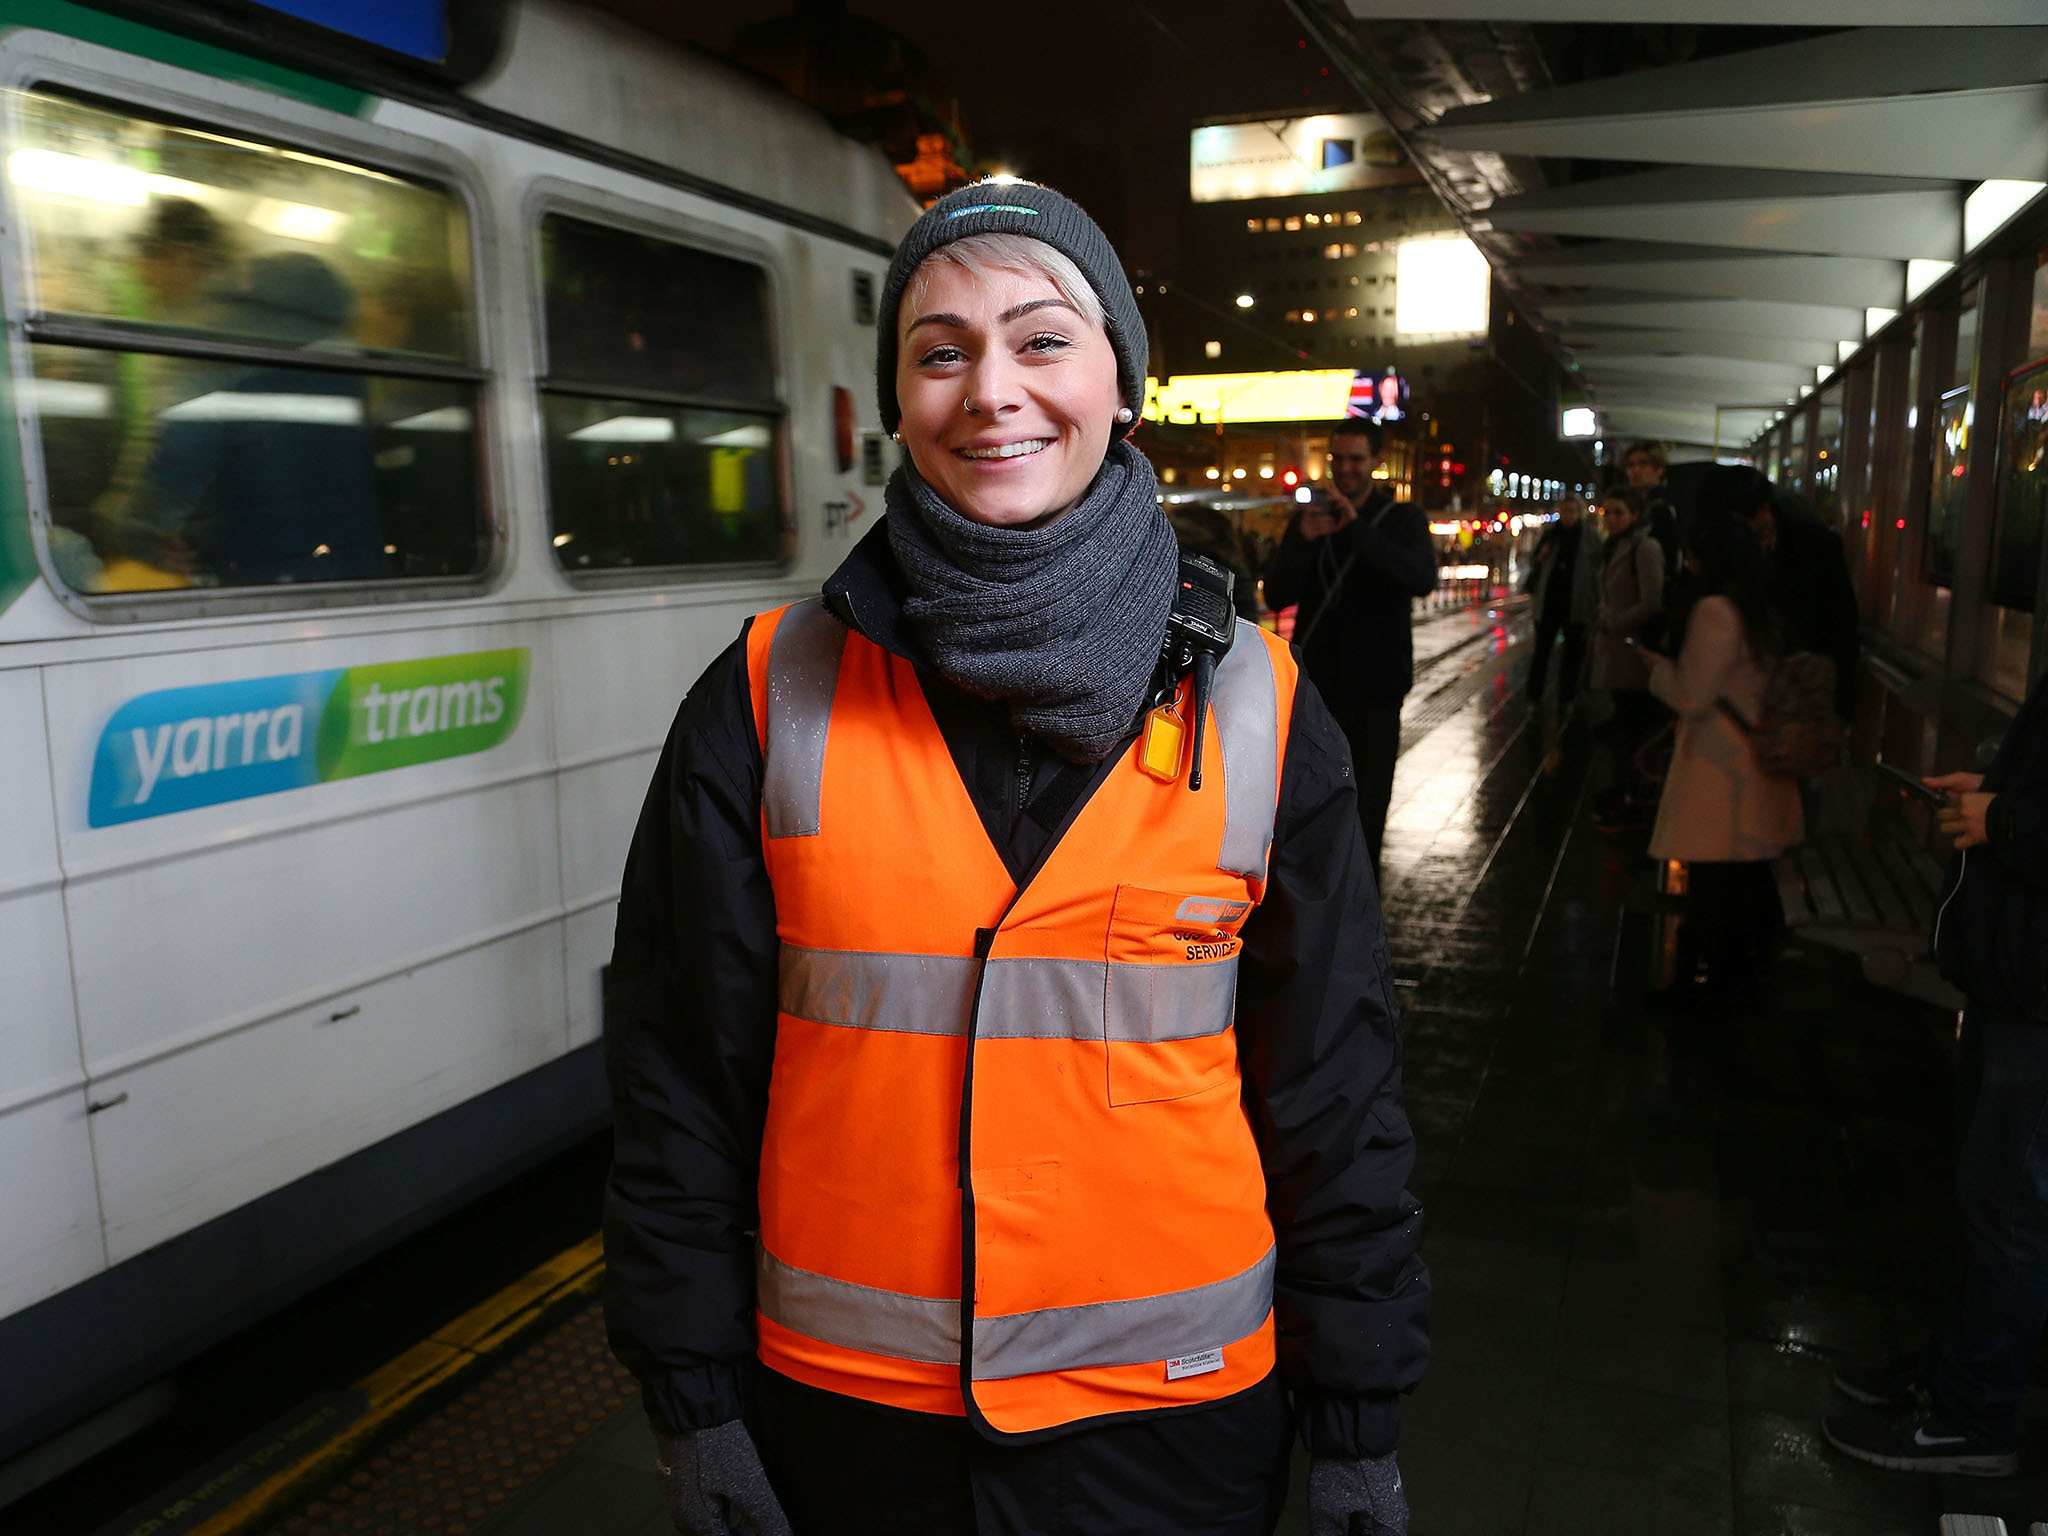 Stefanie Iverson at Yarra Trams